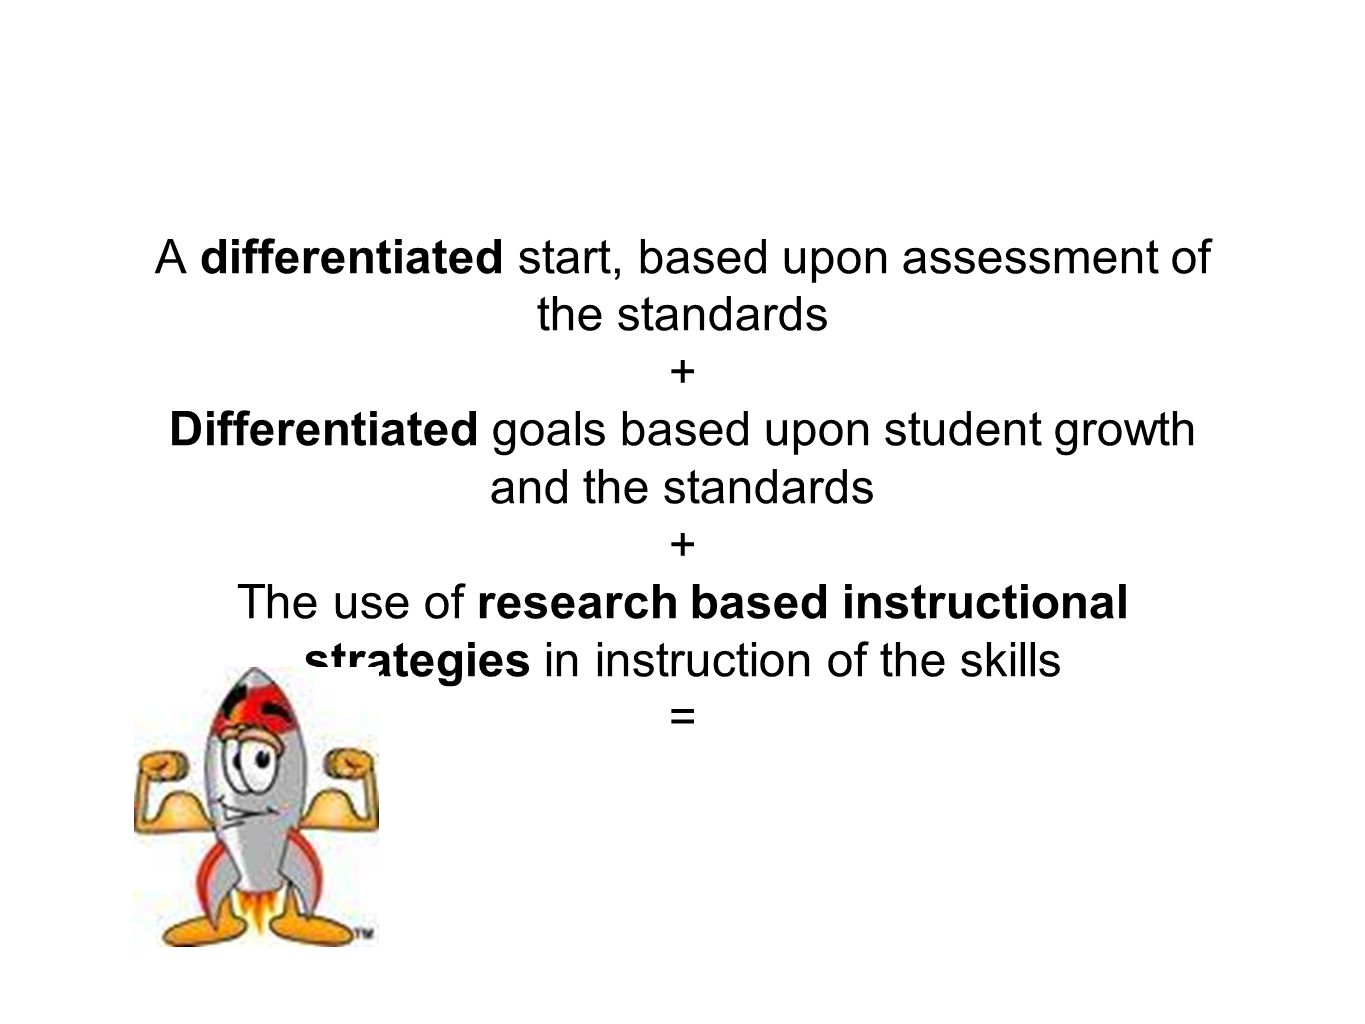 A differentiated start, based upon assessment of the standards + Differentiated goals based upon student growth and the standards + The use of research based instructional strategies in instruction of the skills =